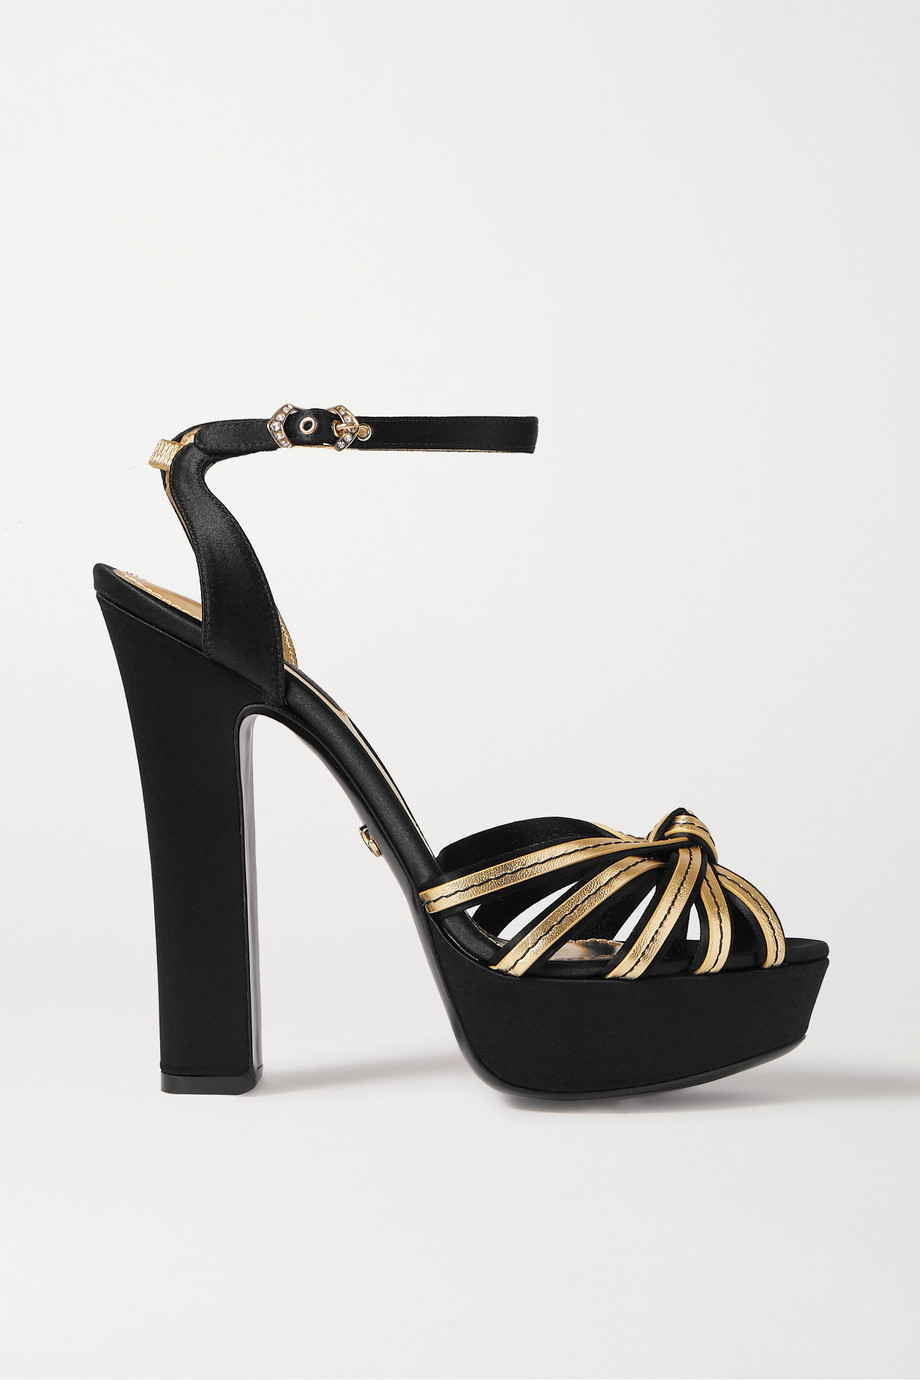 Dolce & Gabbana Knotted metallic leather and satin platform sandals